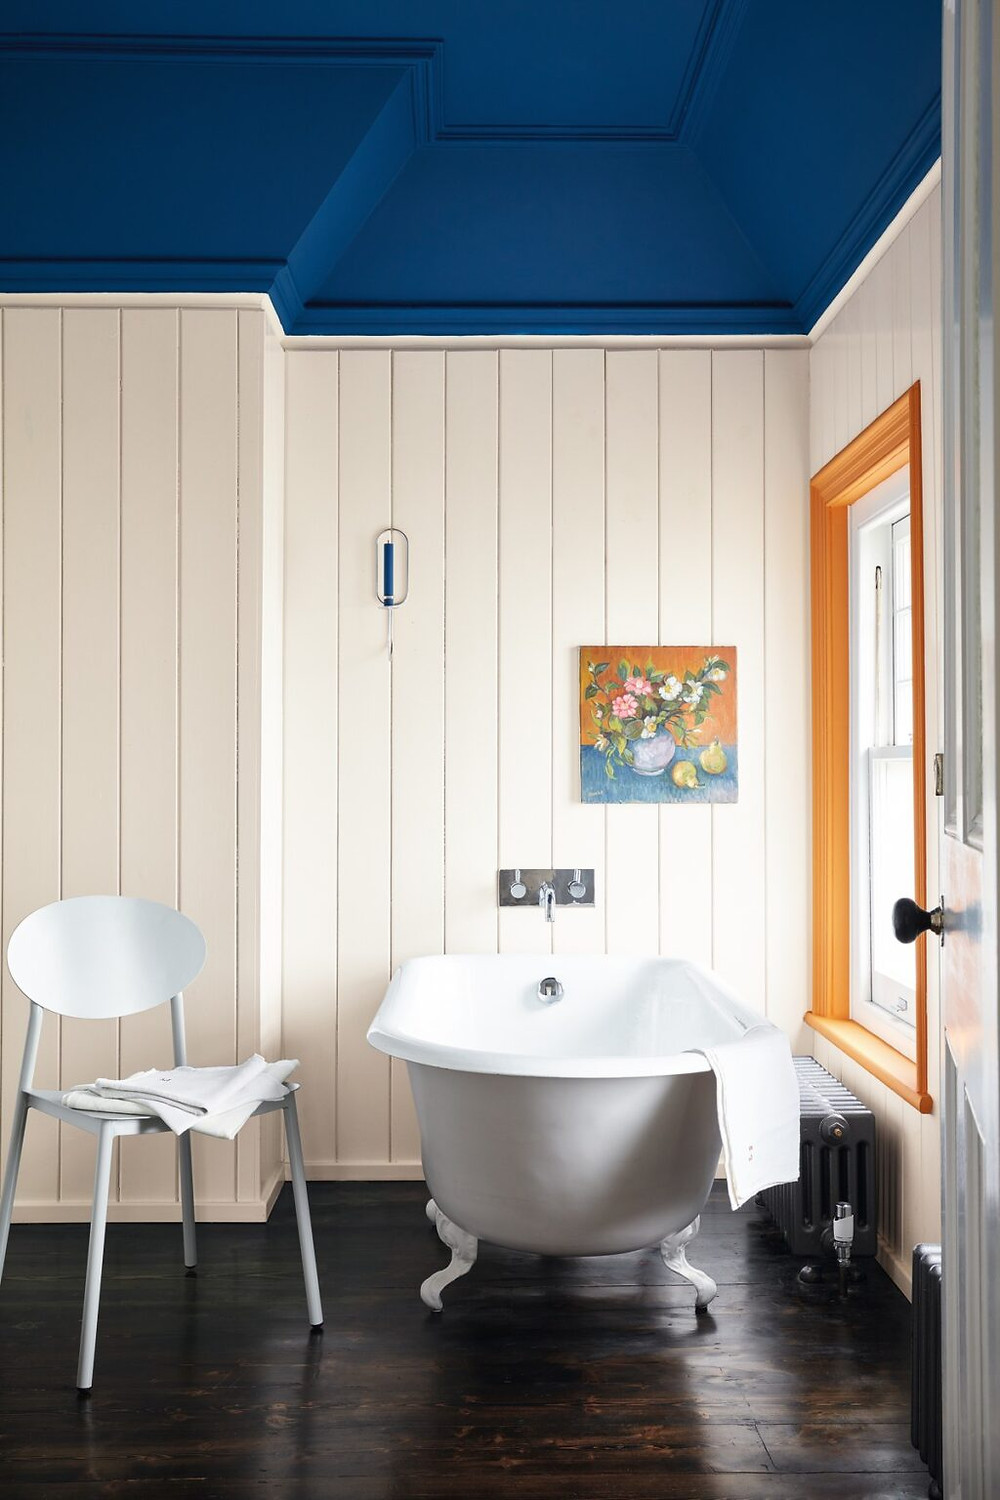 bathroom with blue painted ceiling and window trim painted orange